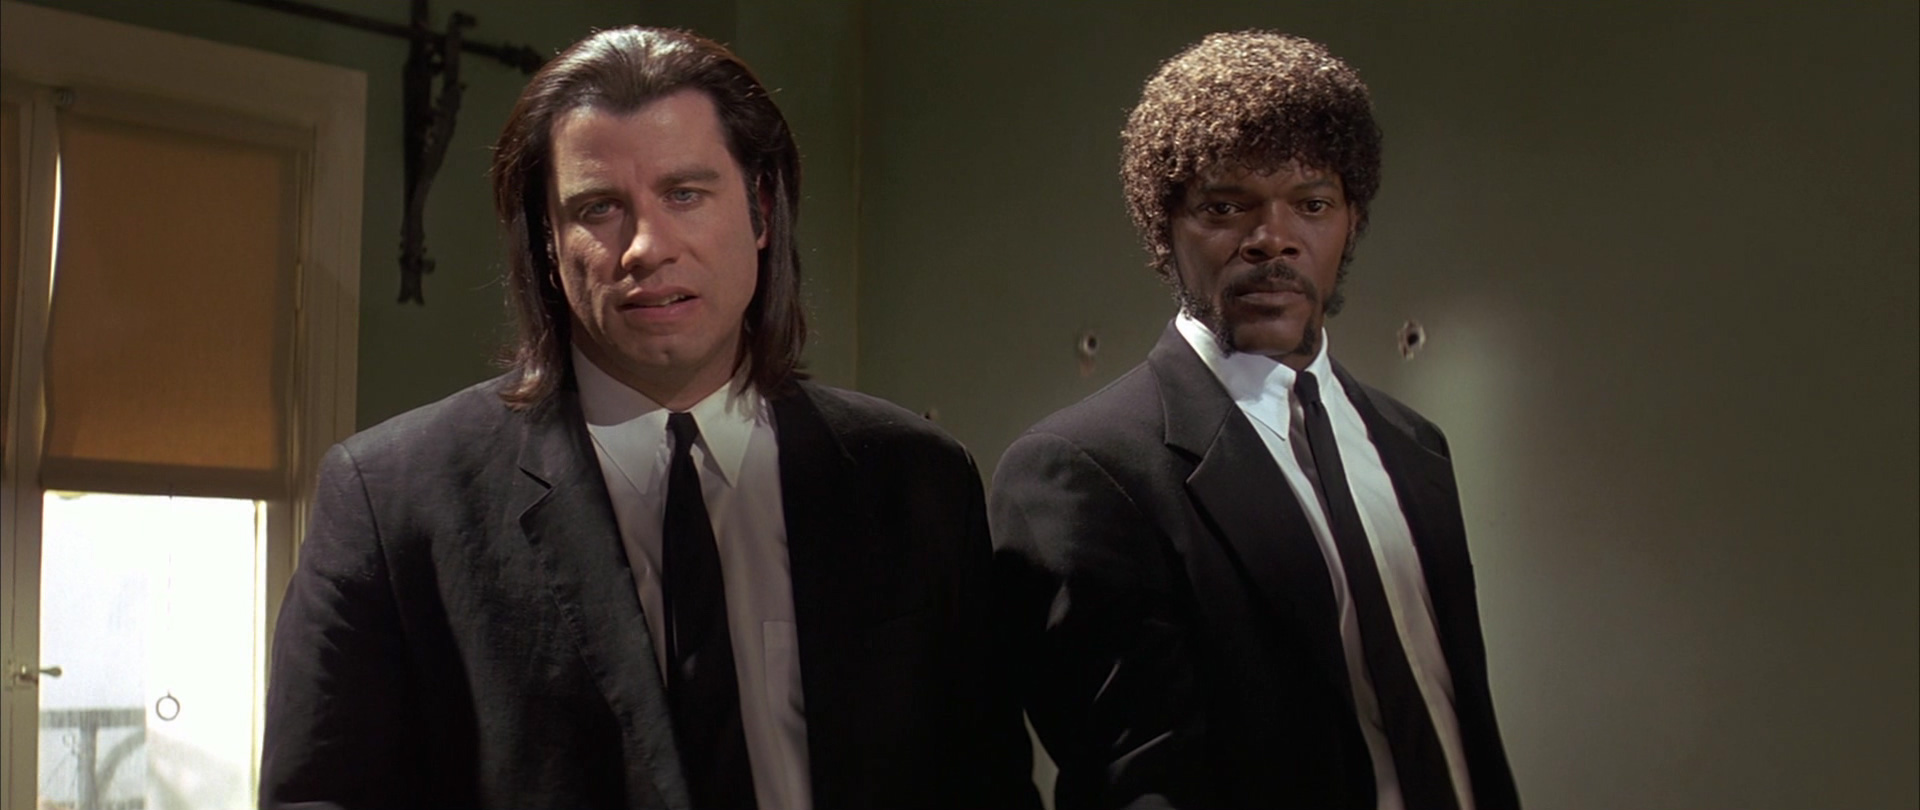 it or pulp fiction Love it or hate it, and most people love it, pulp fiction was probably the most influential movie made in the 1990s and its influence persists it opened up a lot of new territory, especially in putting comedy-of-manners dialogue in the mouths of killers and other moral degenerates pulp fiction was so hip and.